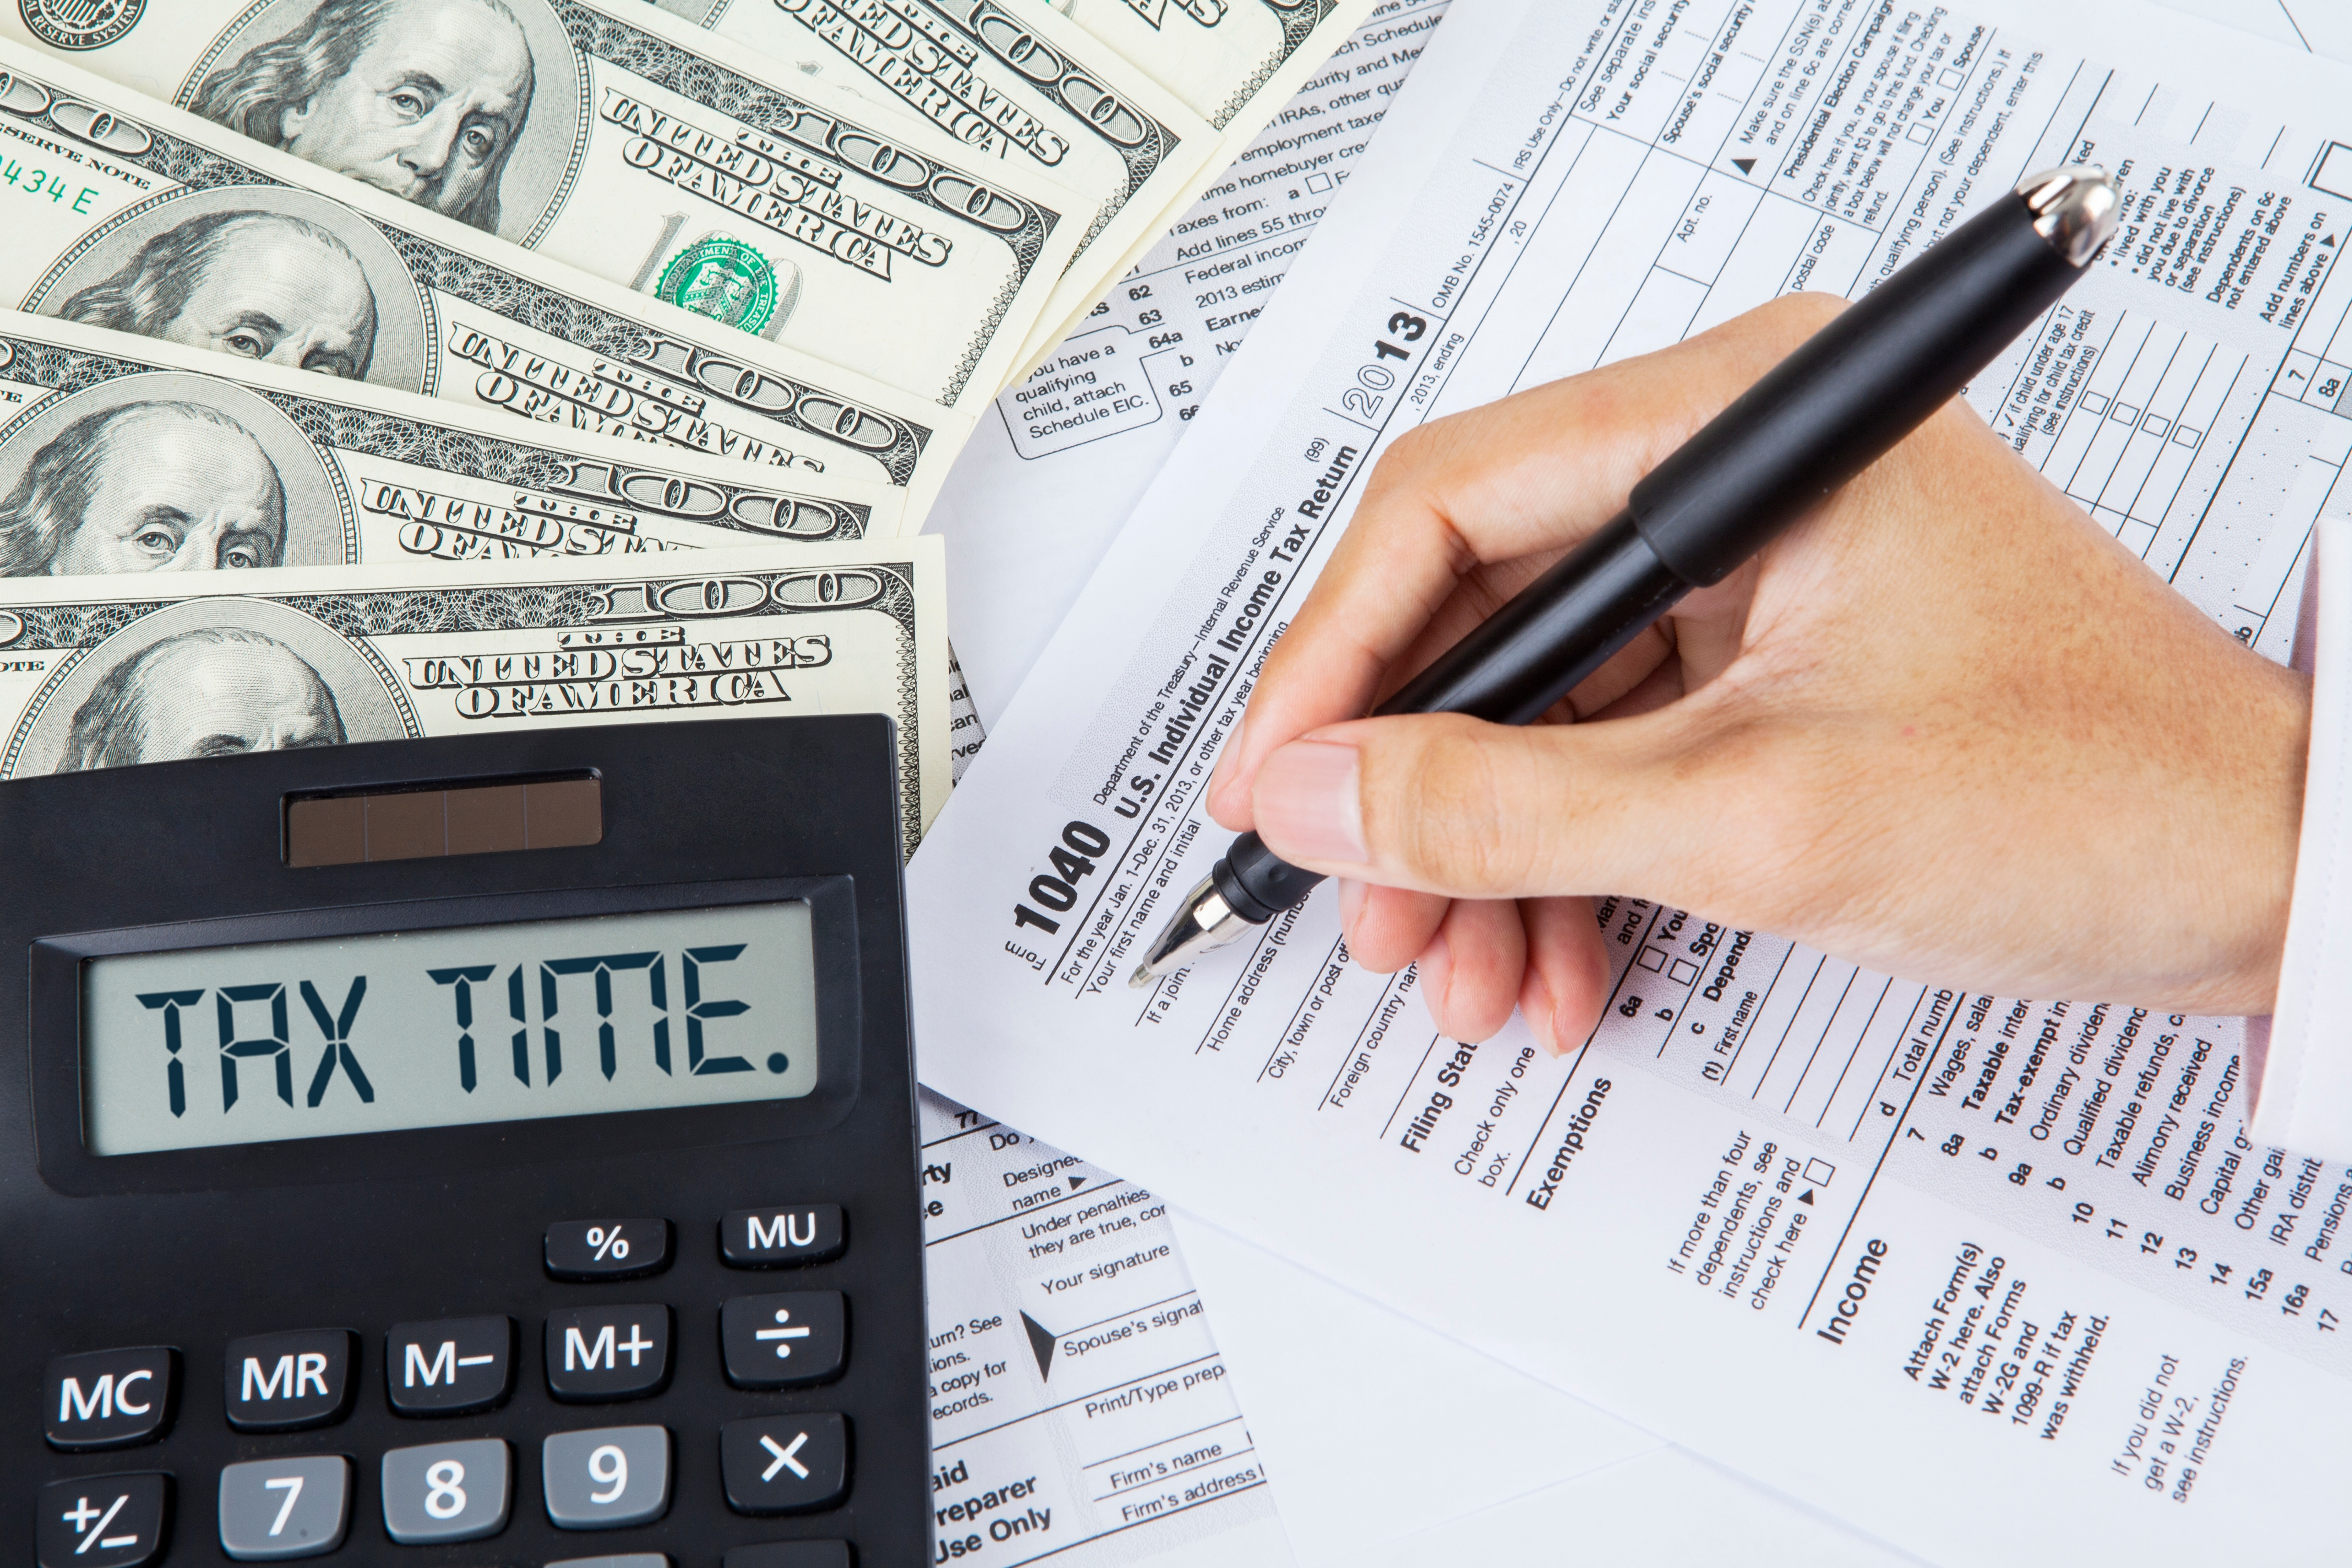 Why I Hate Tax Lawyer